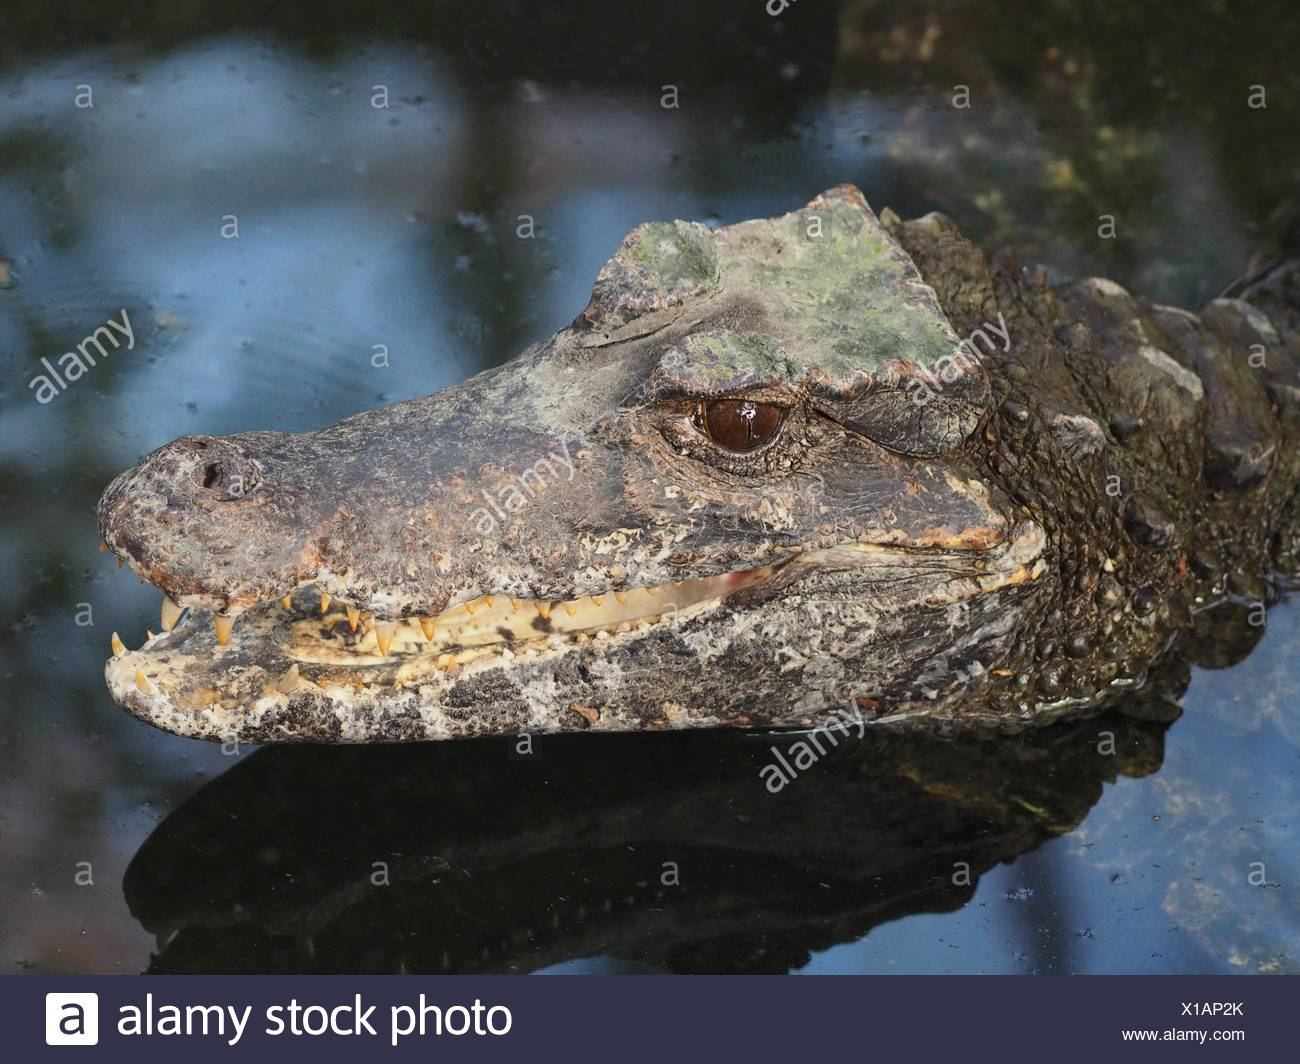 smooth-fronted caiman - Stock Image